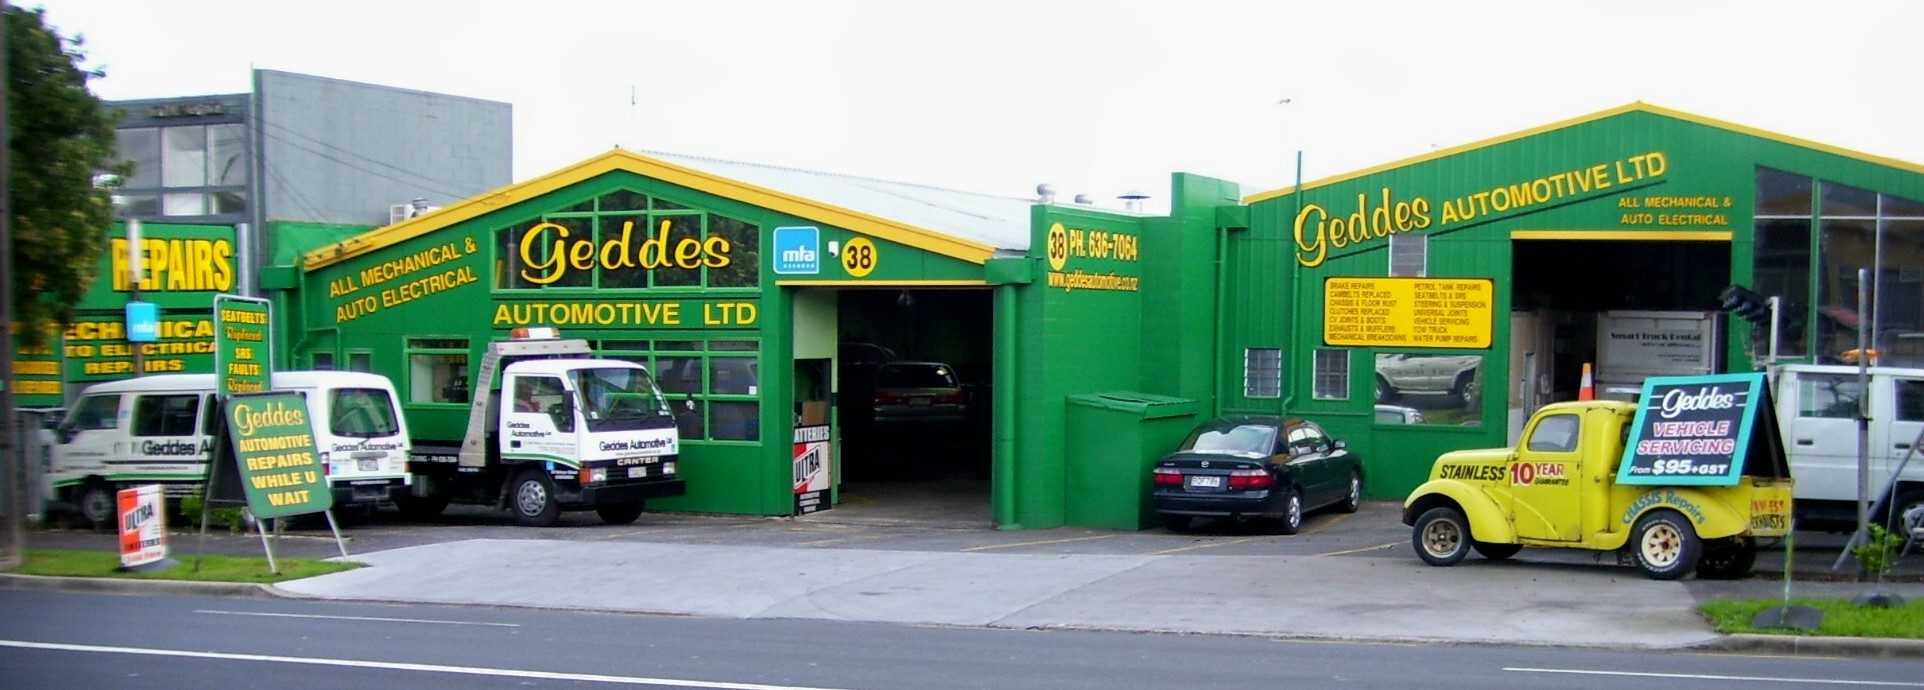 Geddes Automotive Garage